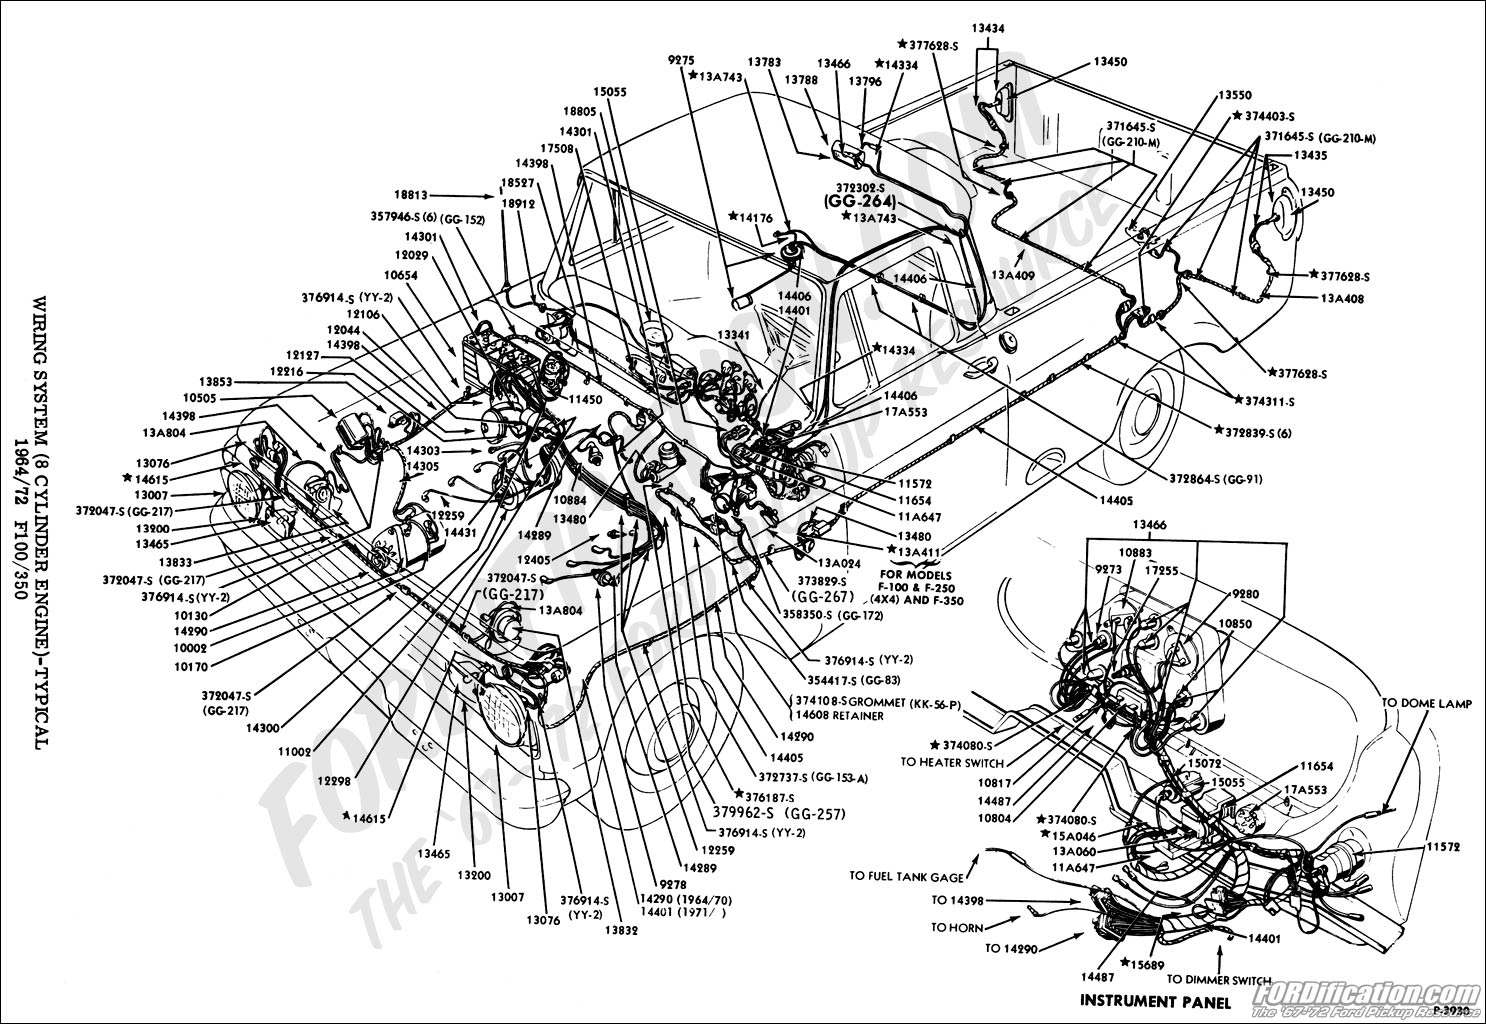 Schematics i on 85 ford mustang alternator wiring diagram